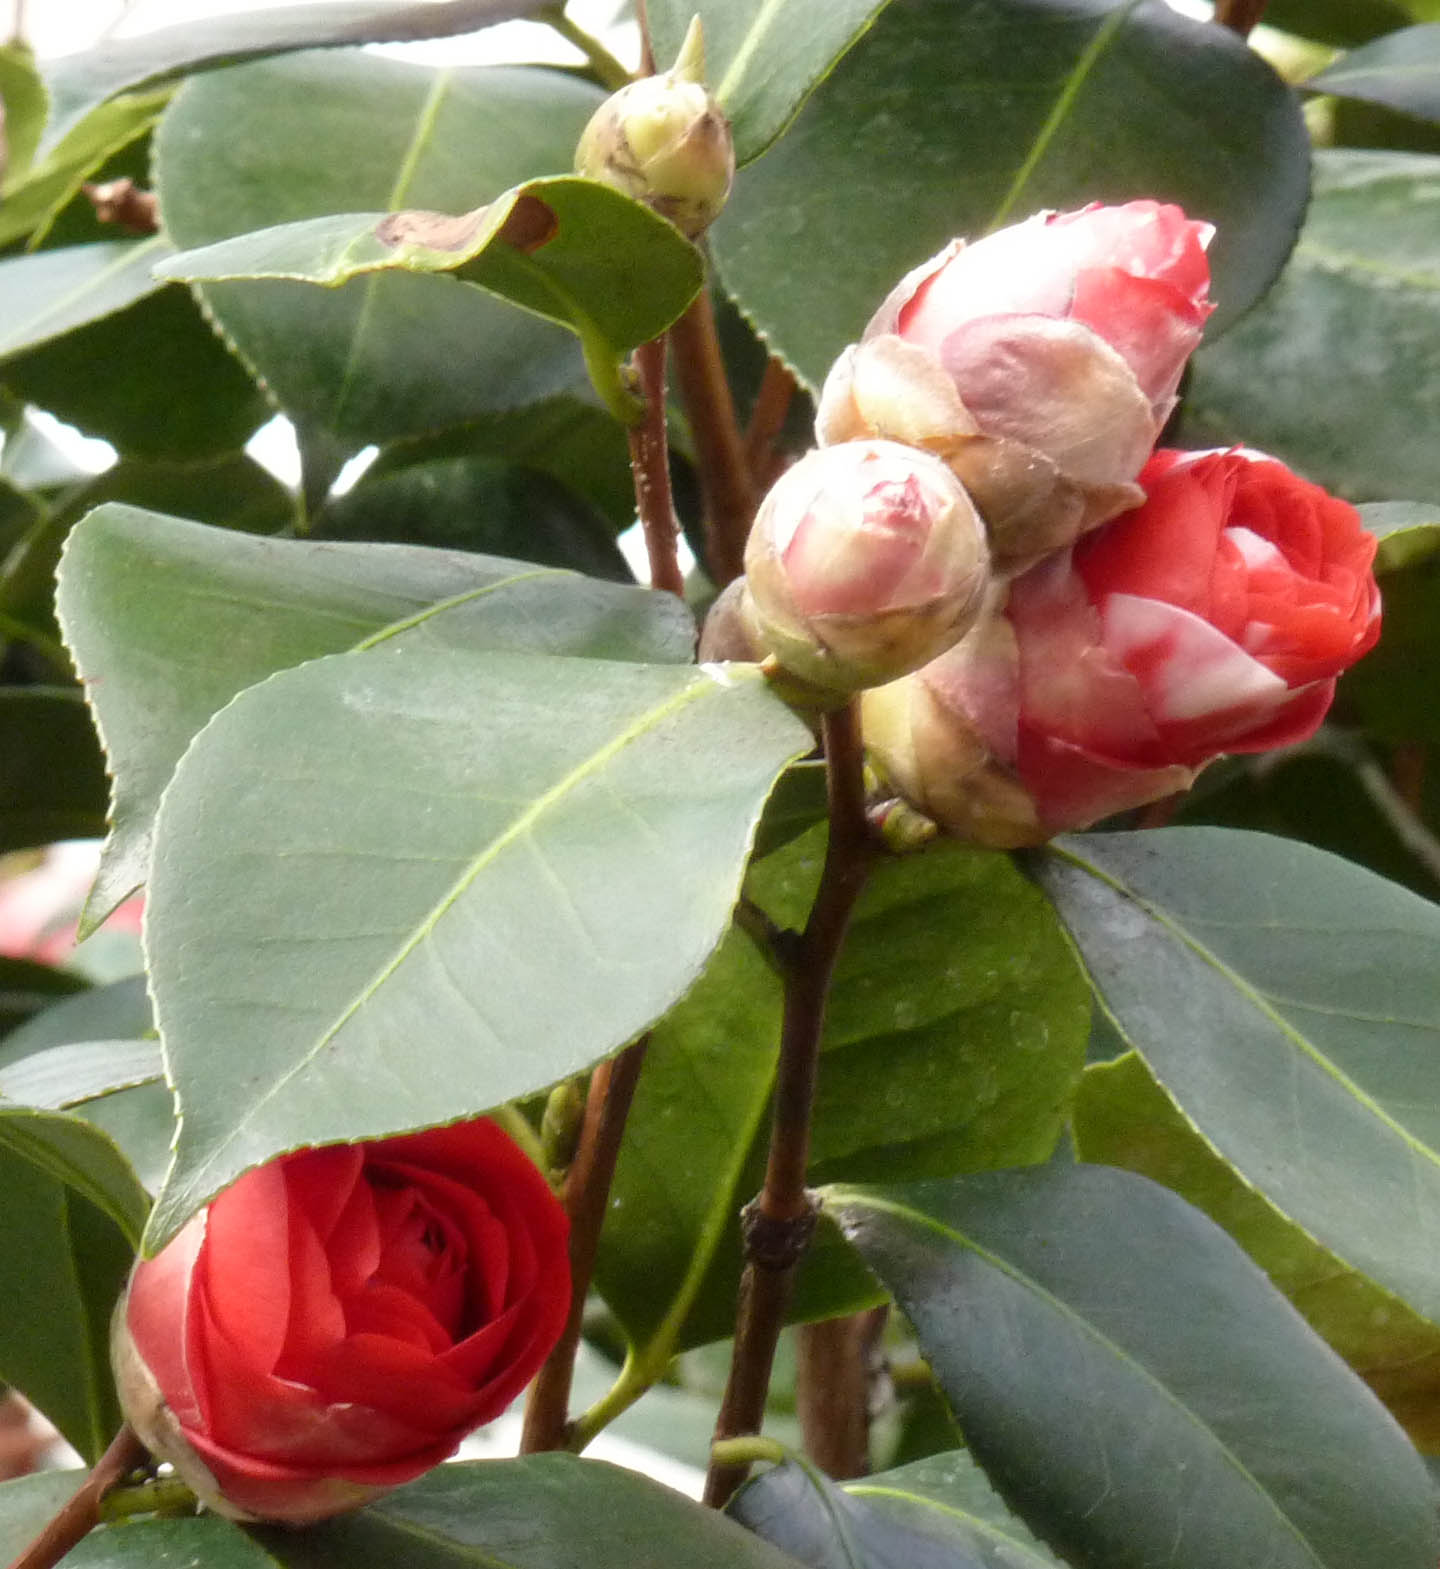 Greenjottings chiswick house camellia festival for Camellia homes